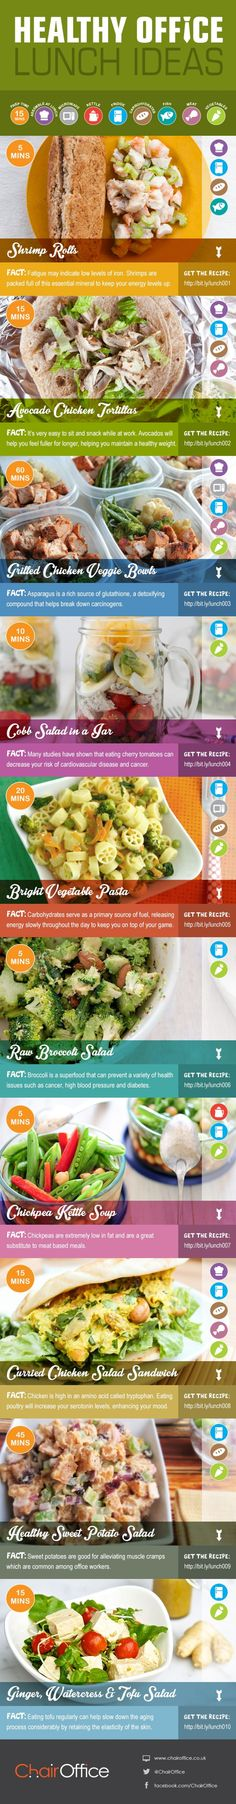 10 Healthy Office Lunches